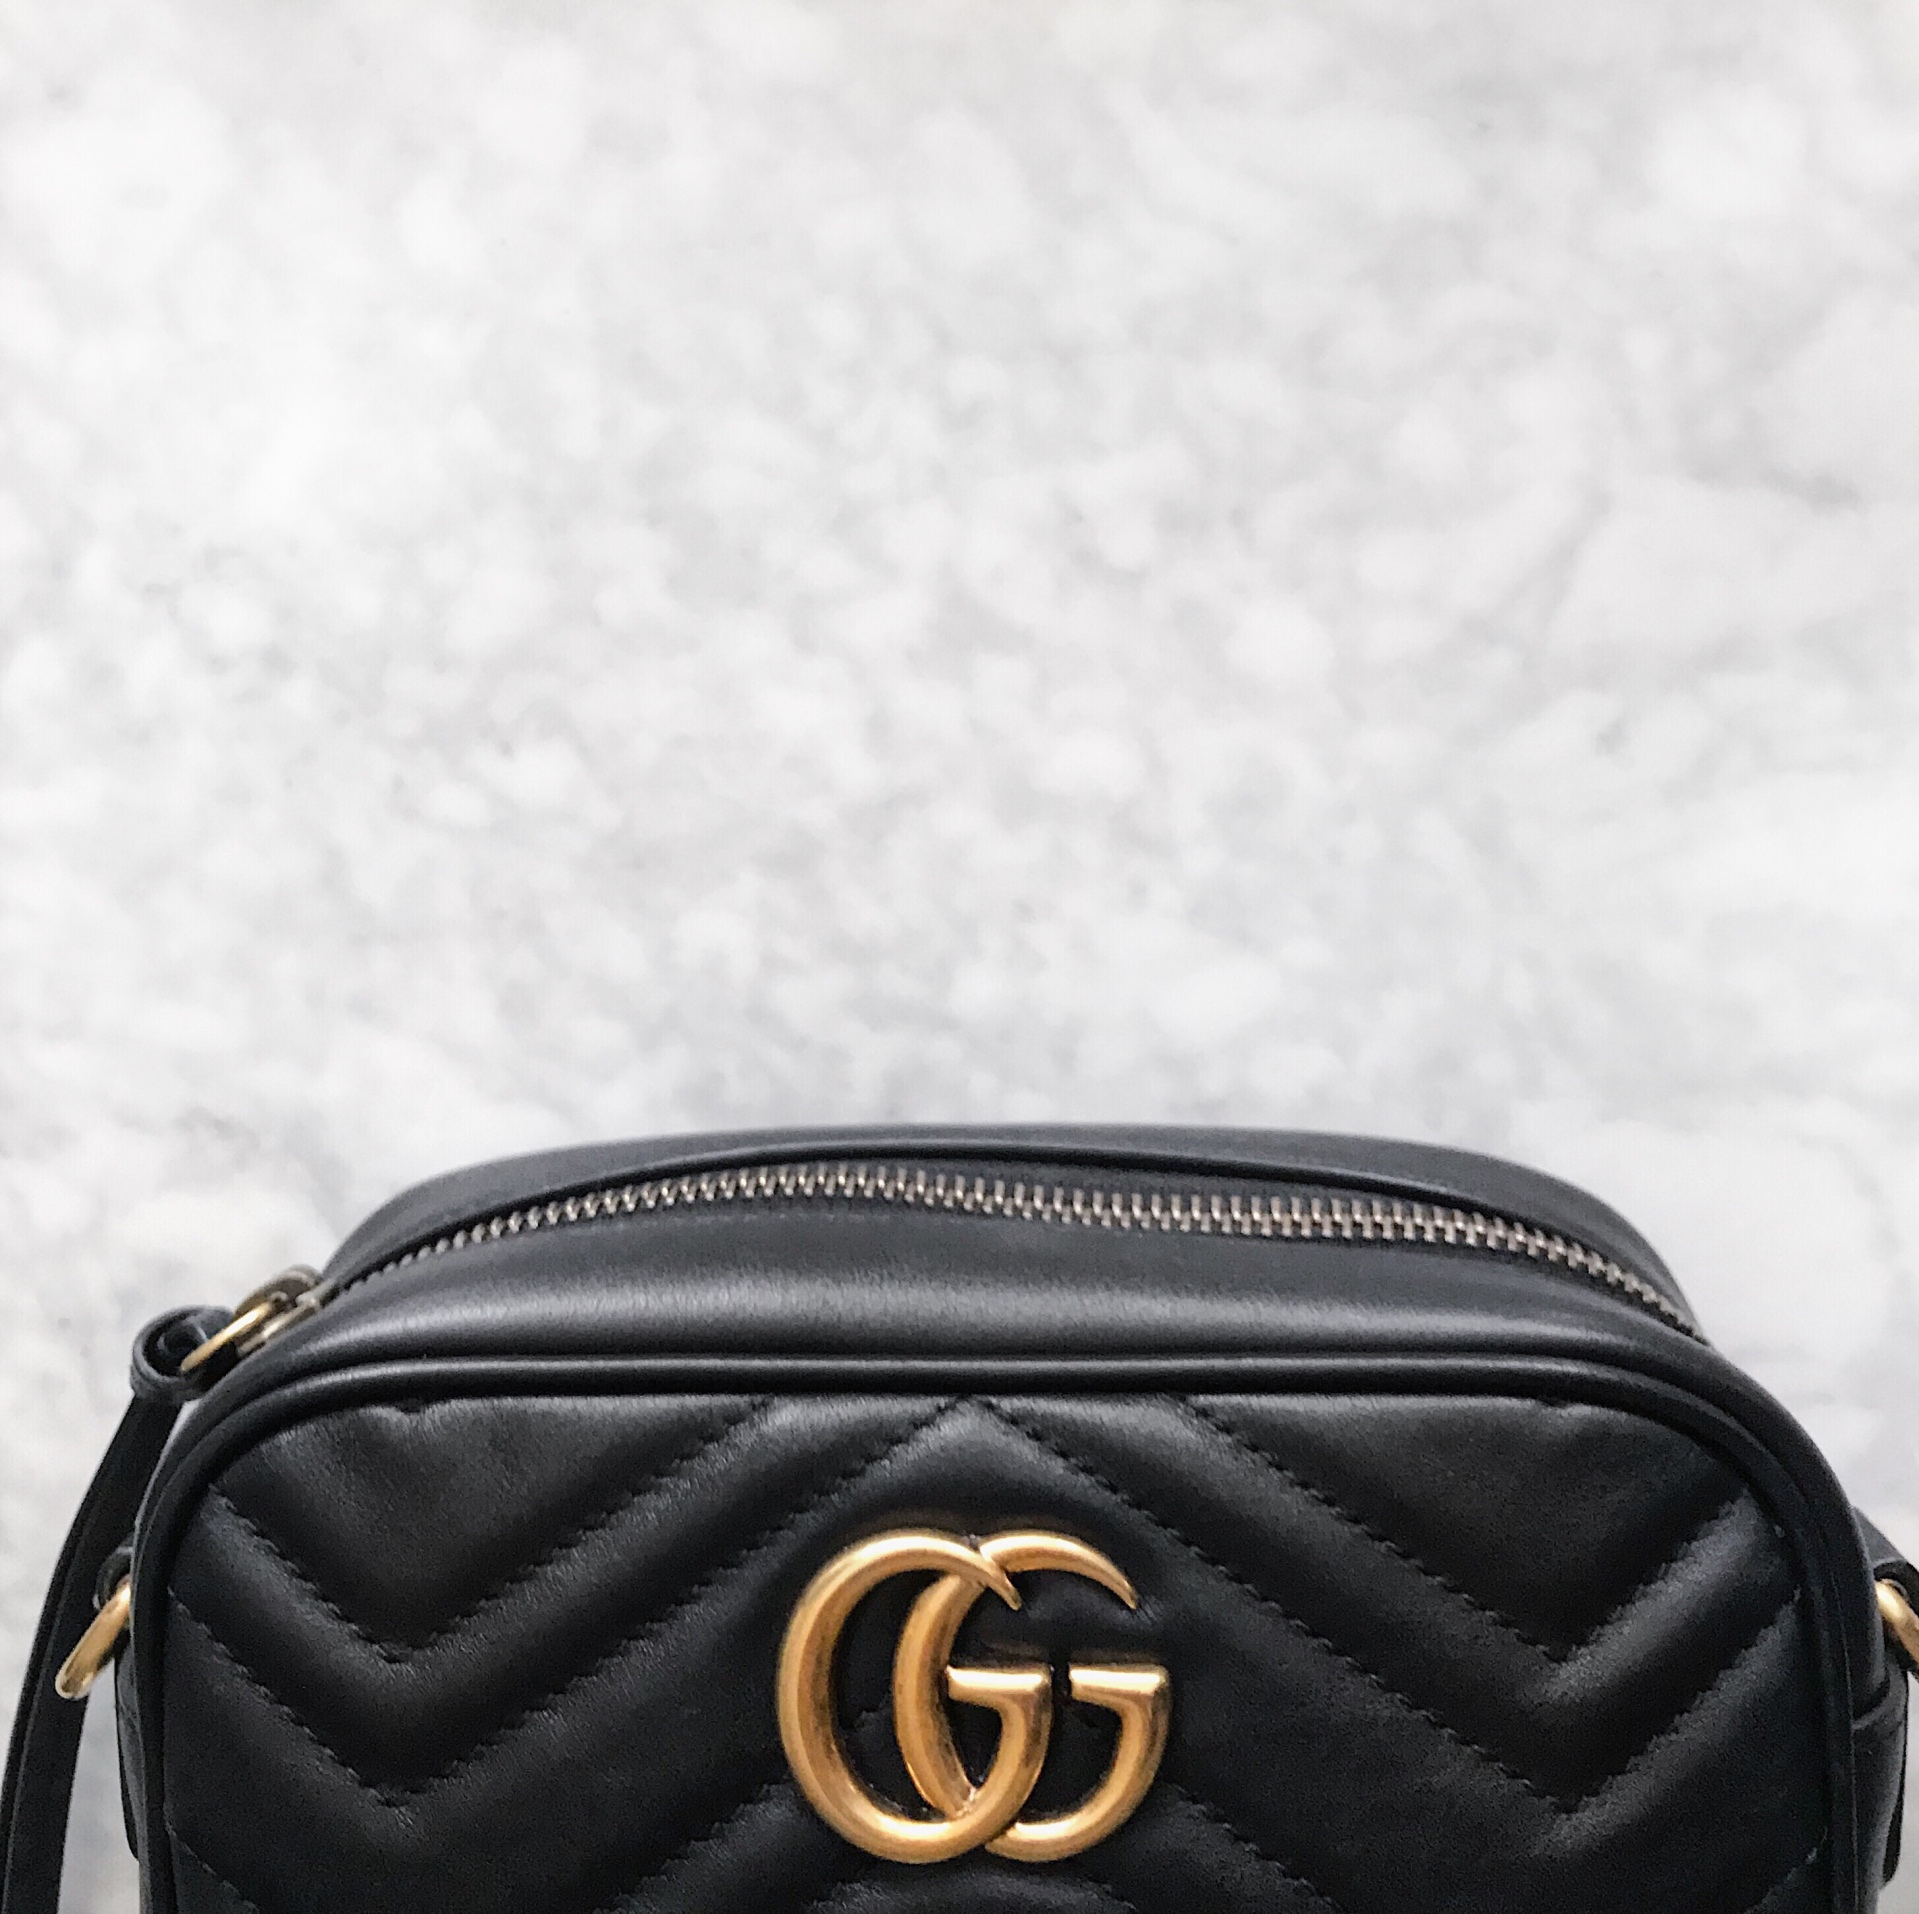 39d7fb08e0cbd9 Bag Review: Gucci Marmont Mini Camera Bag – Coffee and Handbags